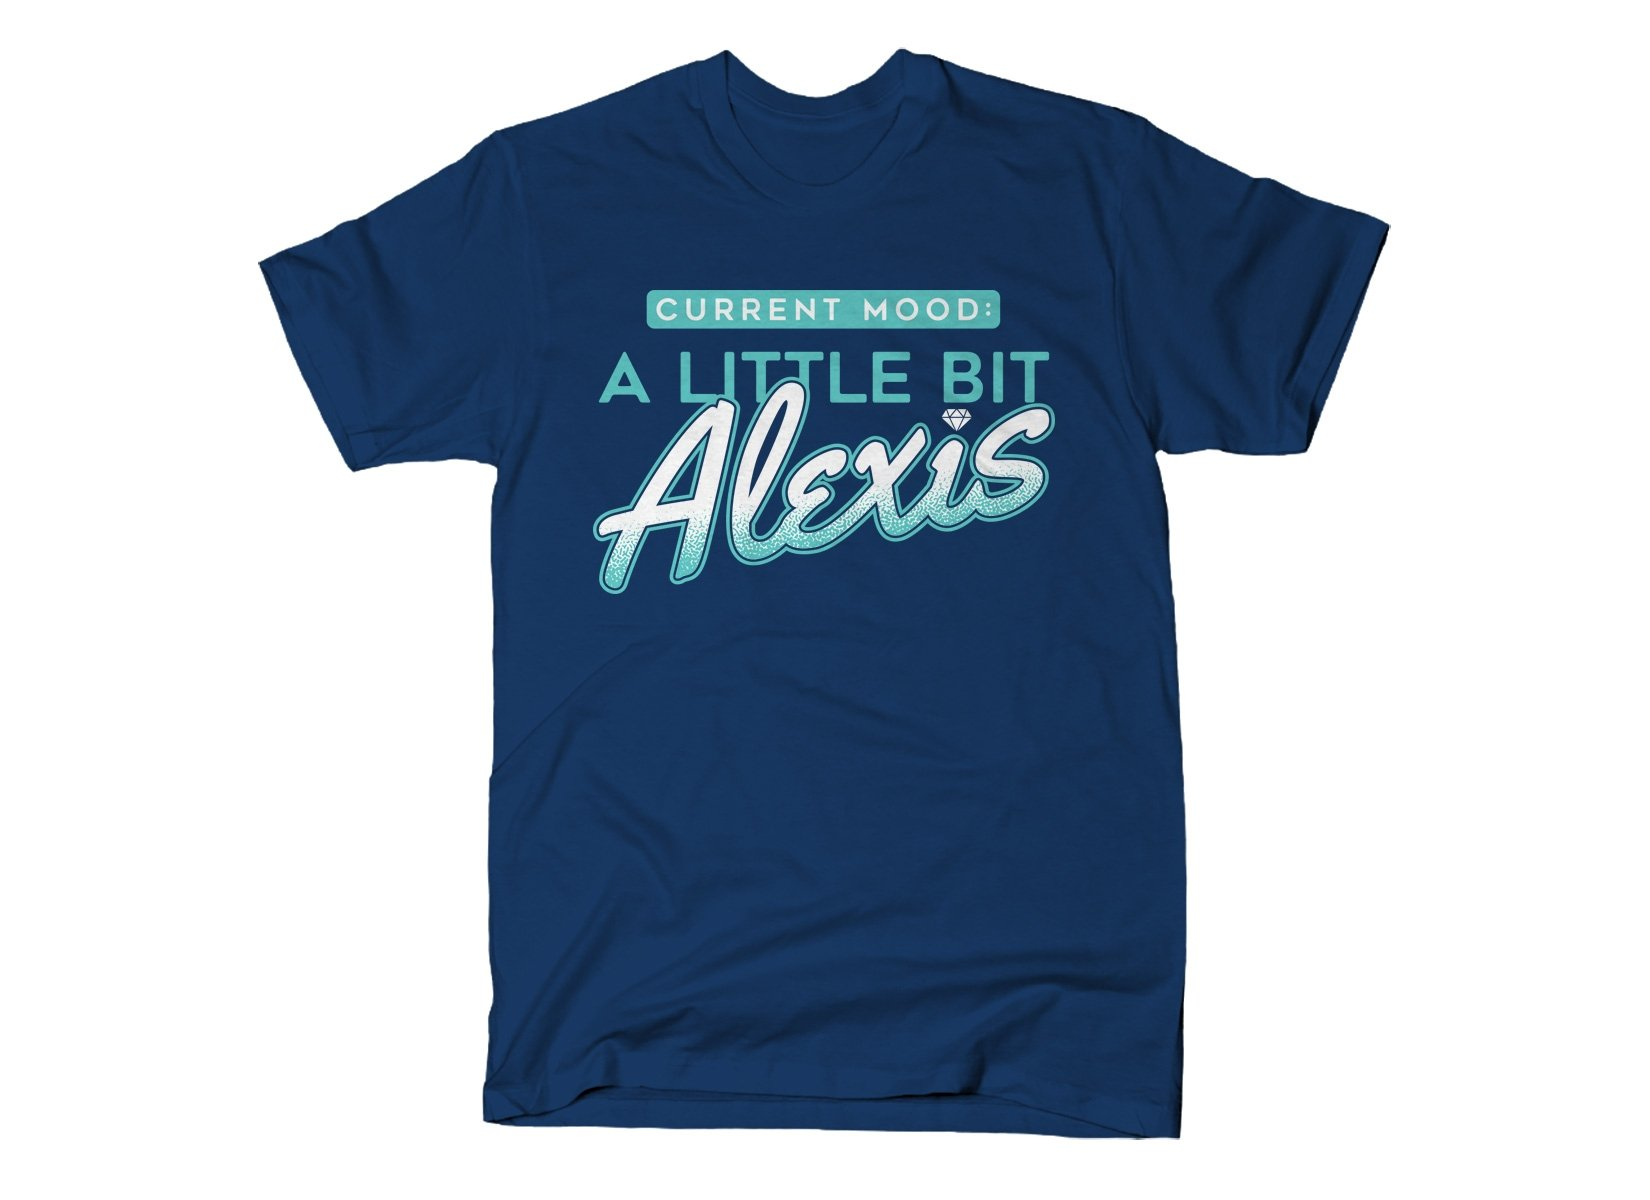 A Little Bit Alexis on Mens T-Shirt